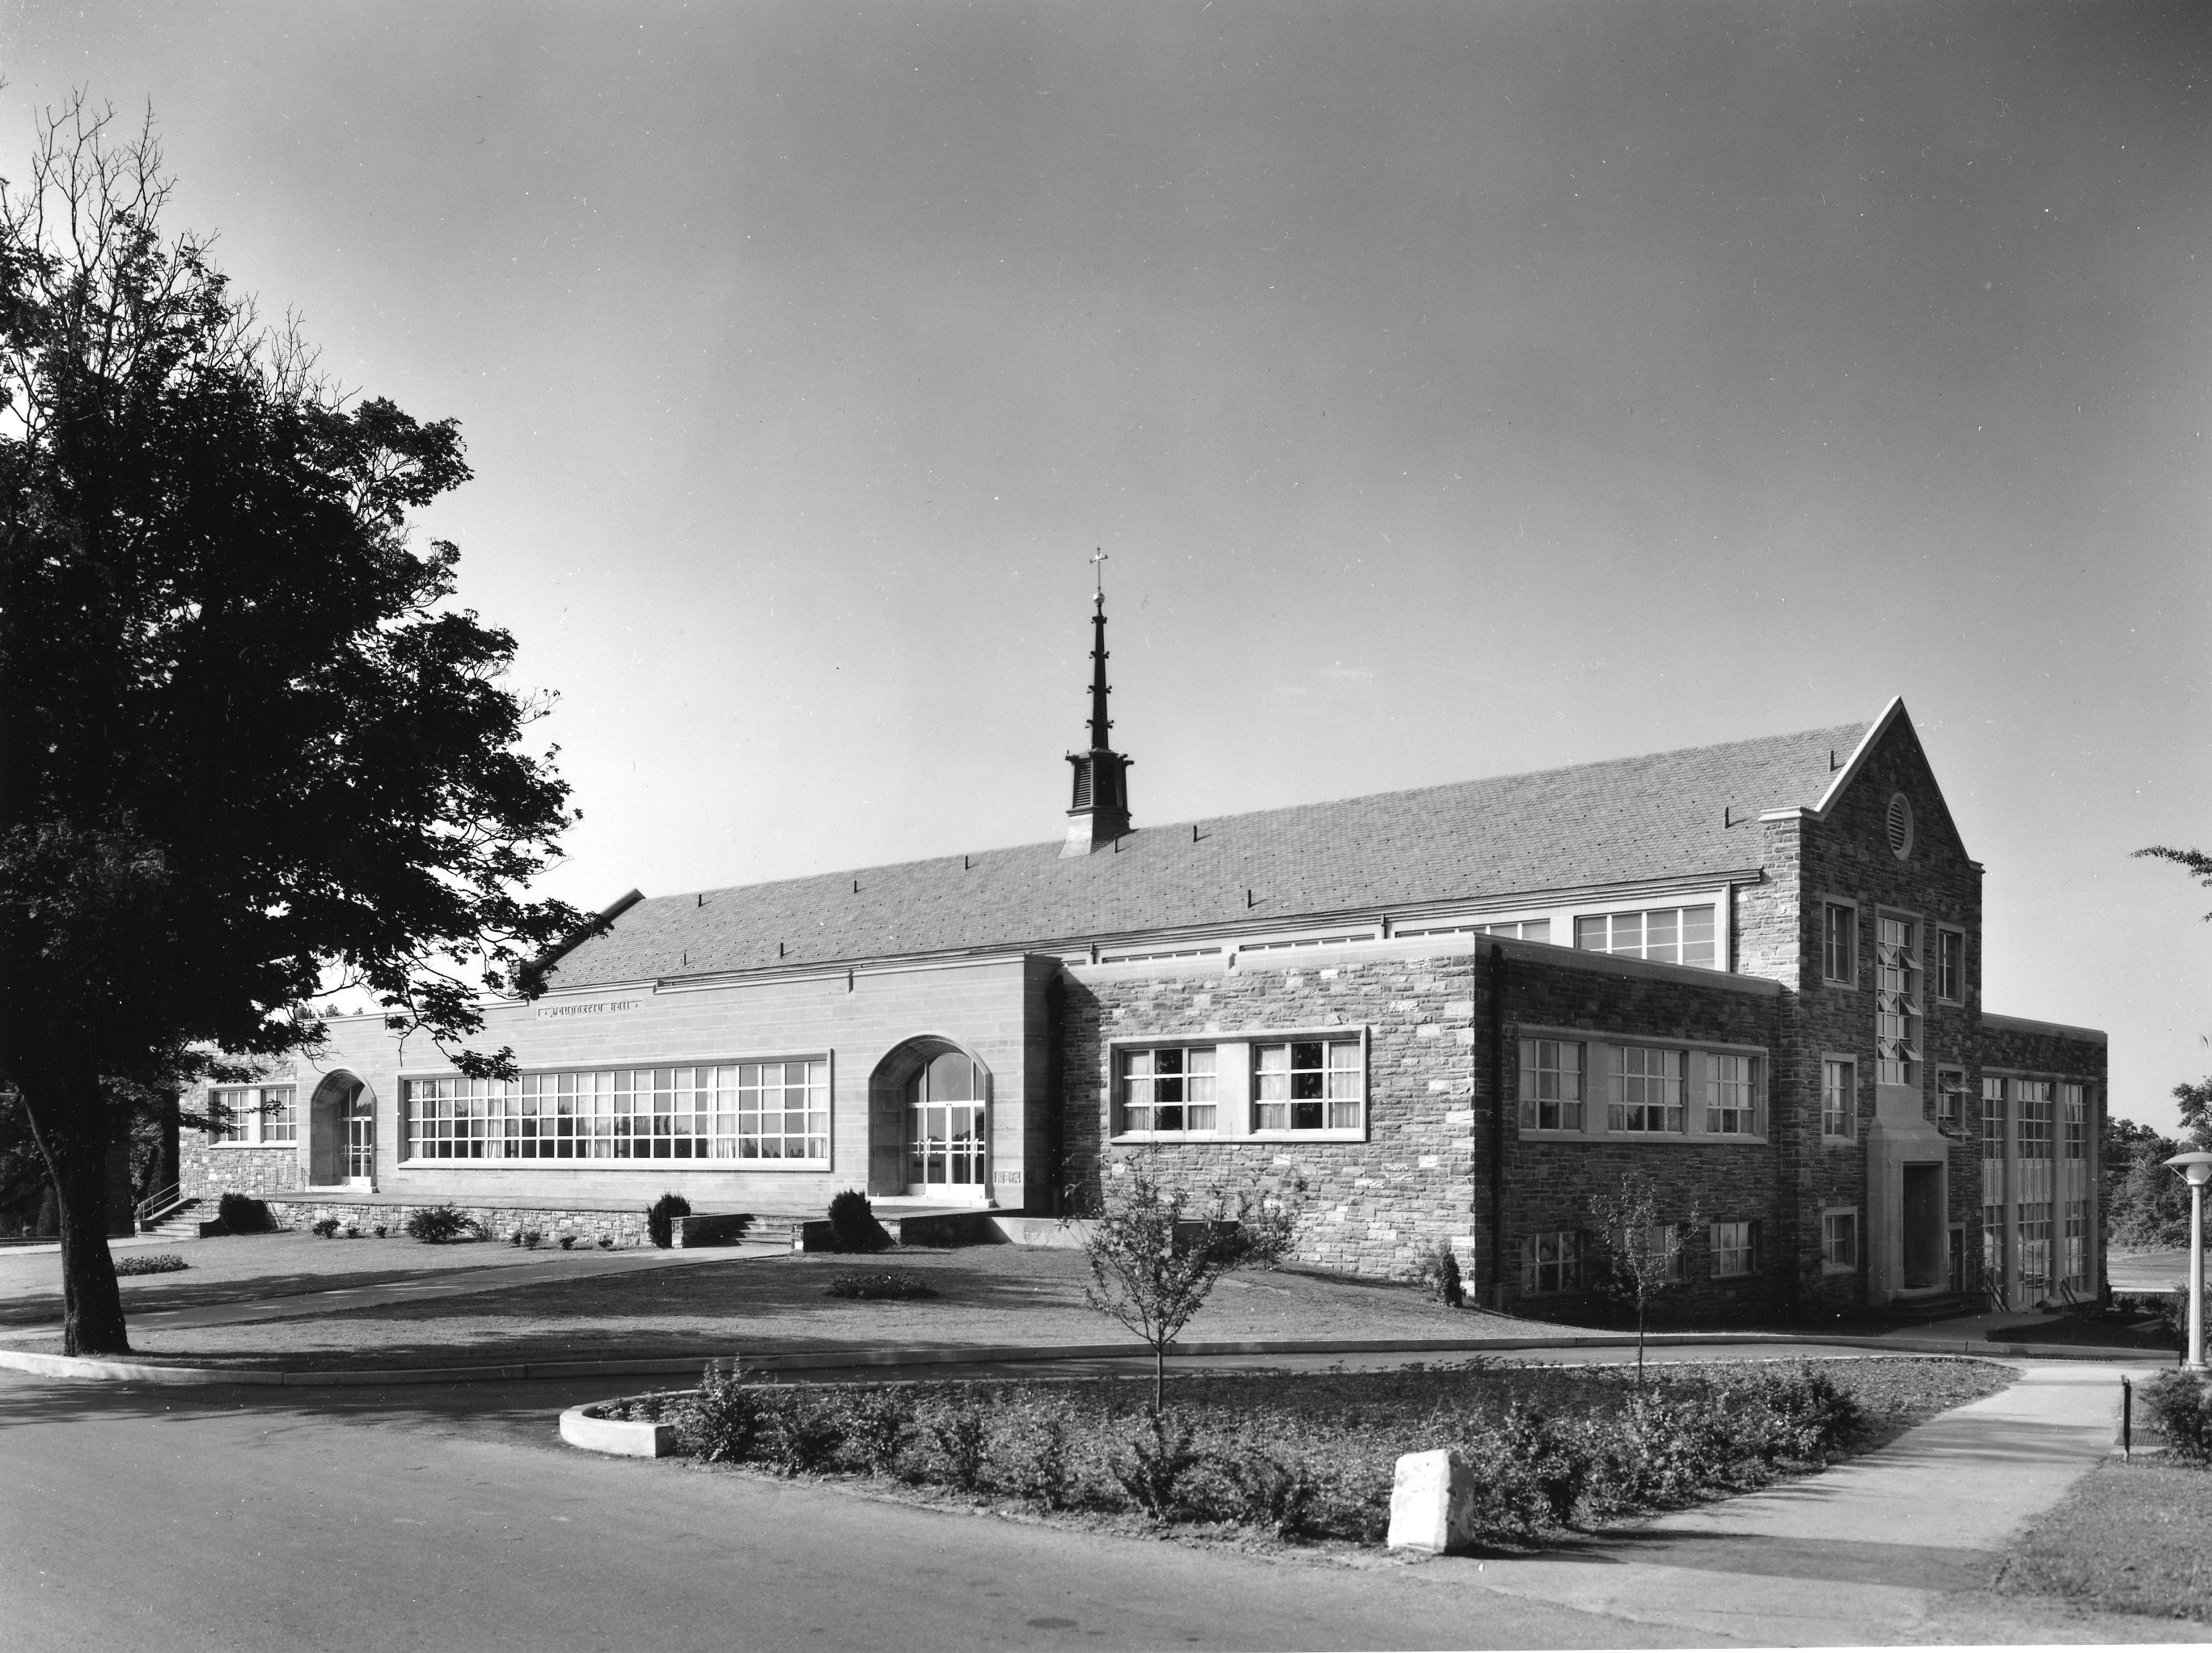 Dougherty Hall built in 1954